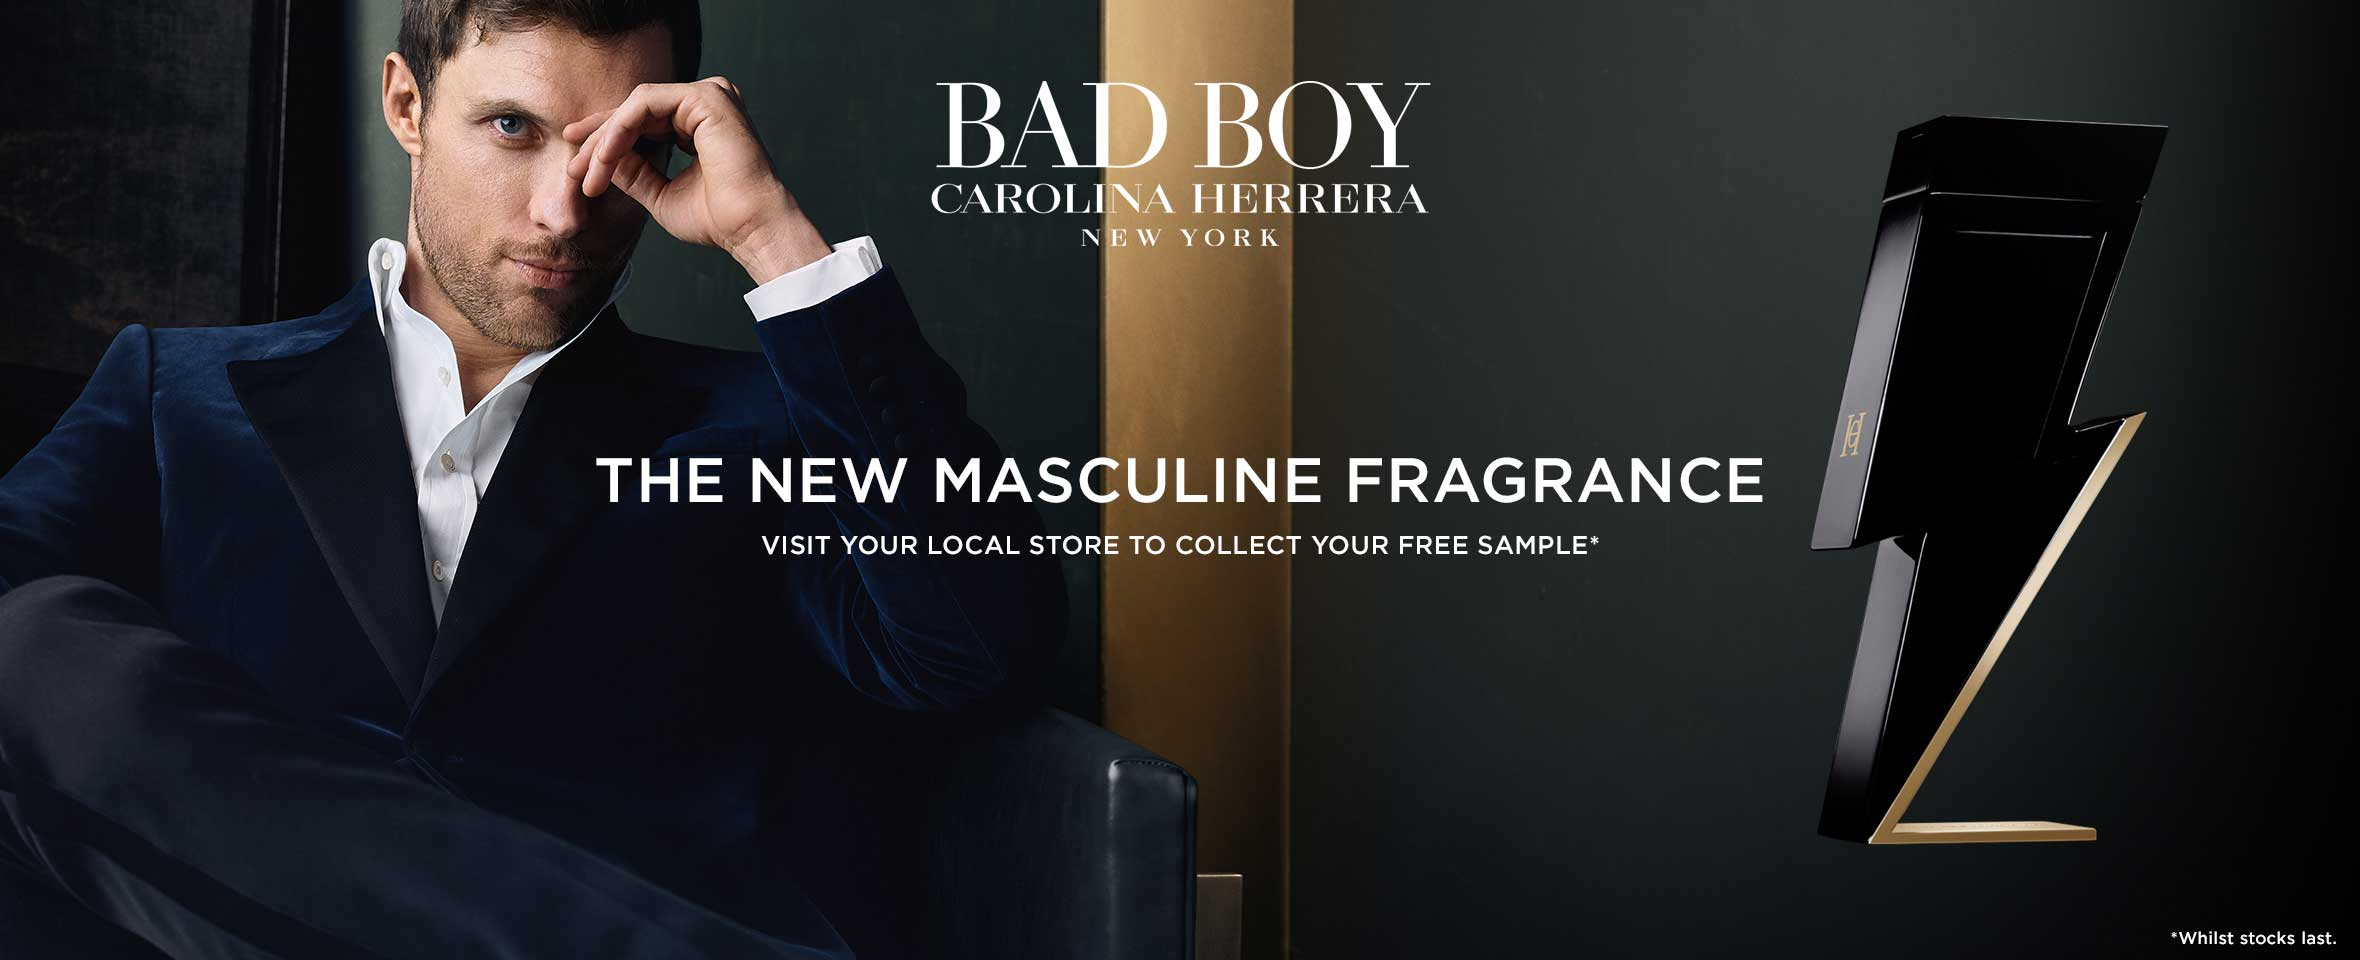 Discover Bad Boy, the new masculine fragrance from Carolina Herrera